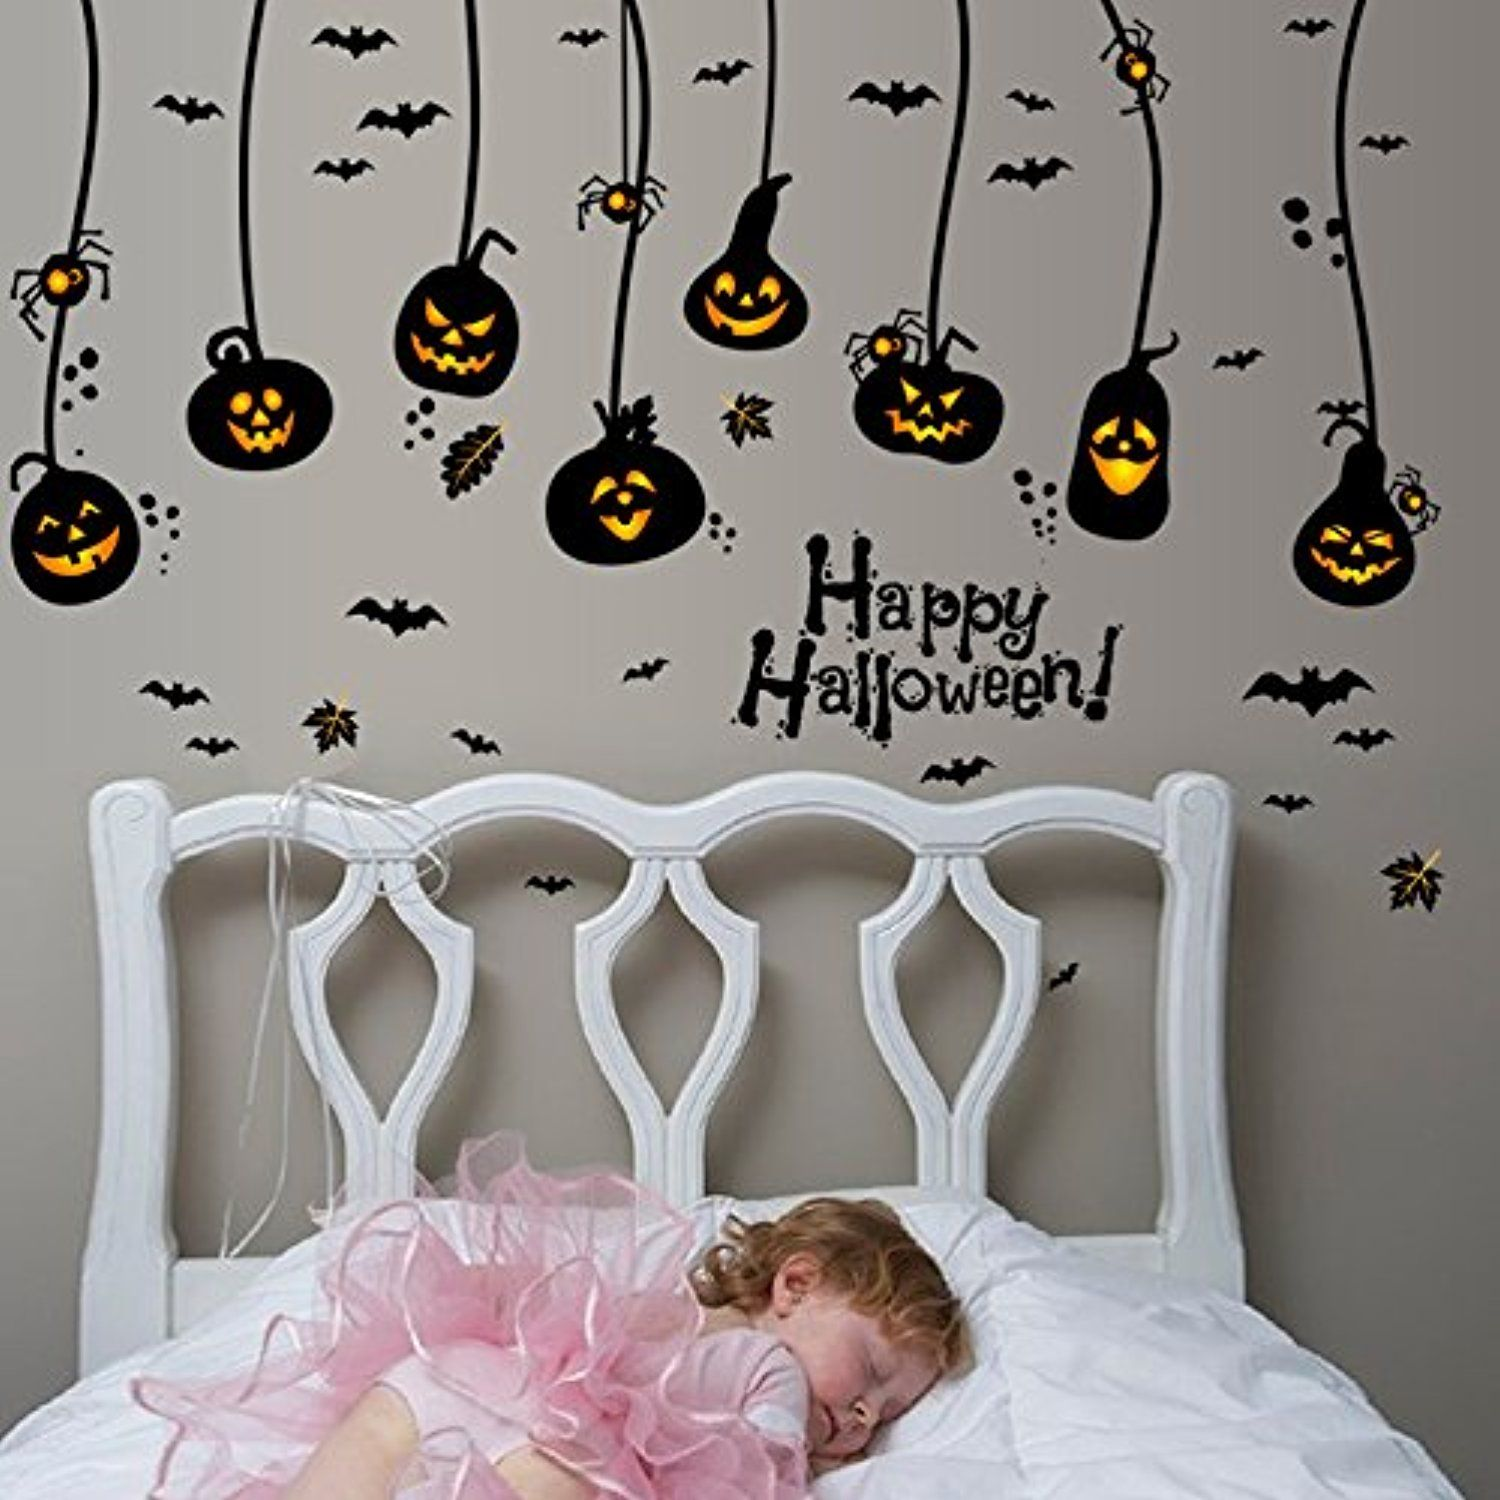 Happy Halloween DIY Wall Decals Wall Stickers Indoor Party - Diy Indoor Halloween Decorations